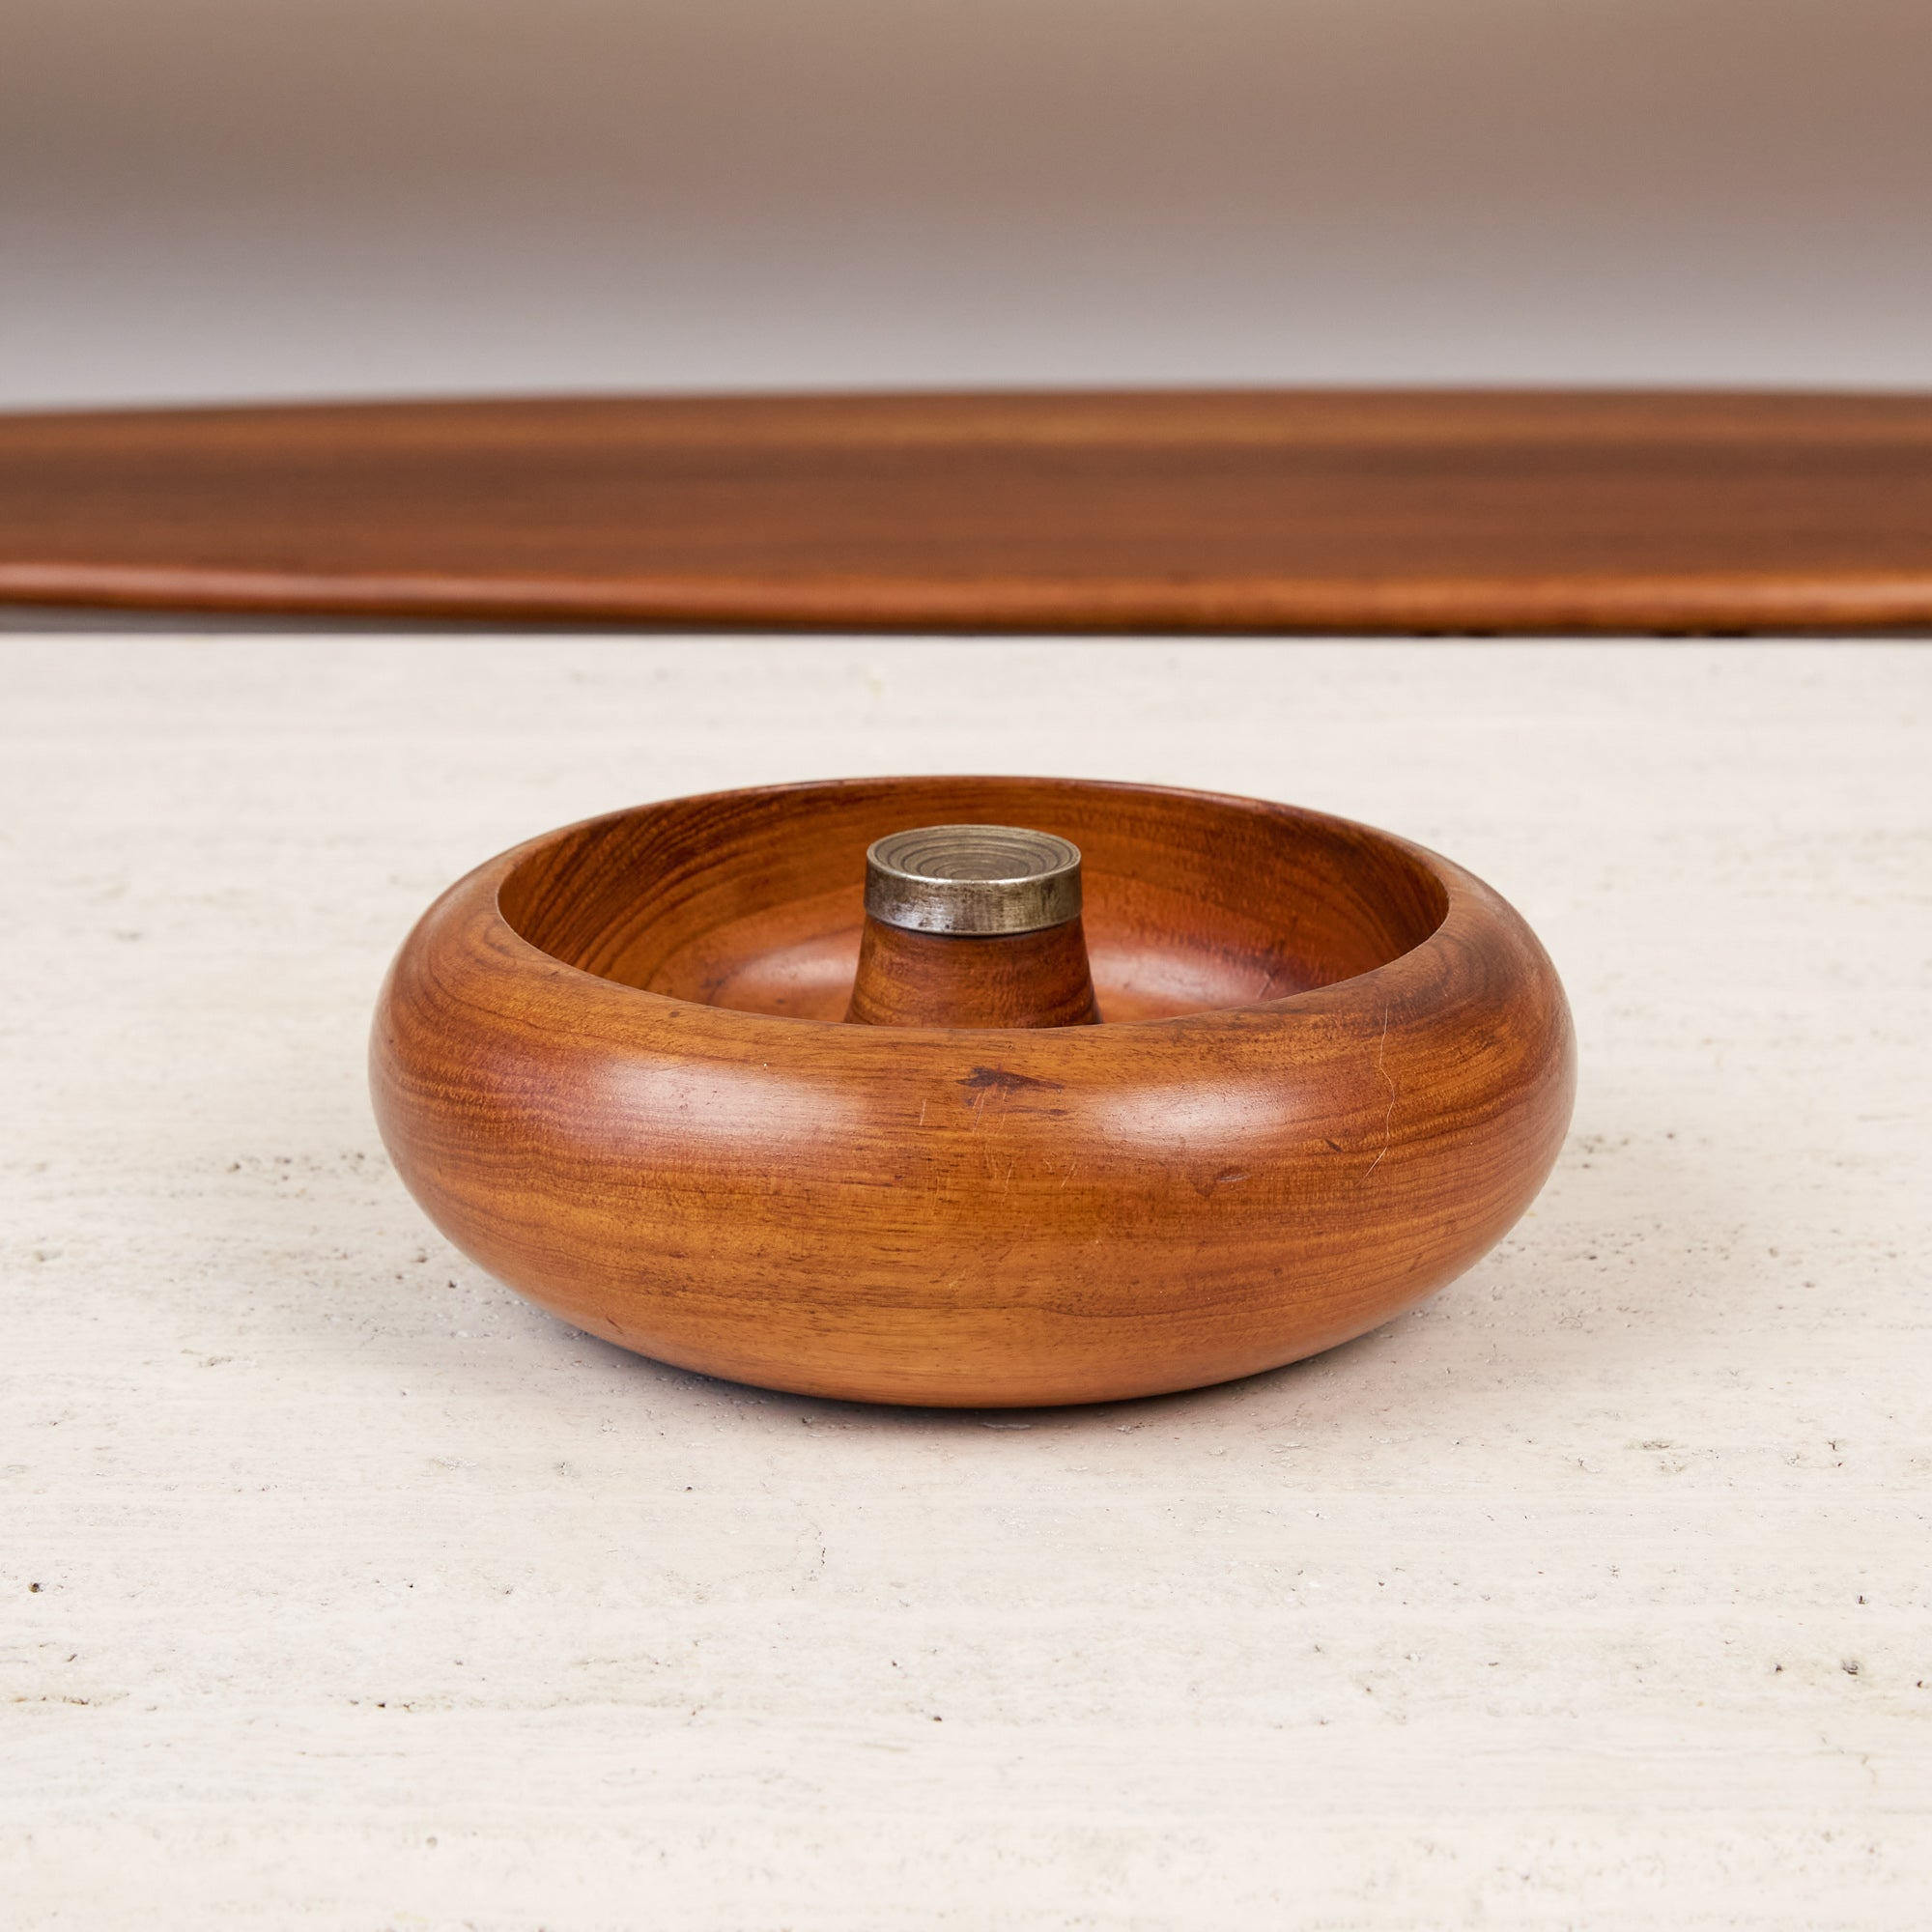 Turned Walnut and Brass Nut Bowl by Pelican of Australia